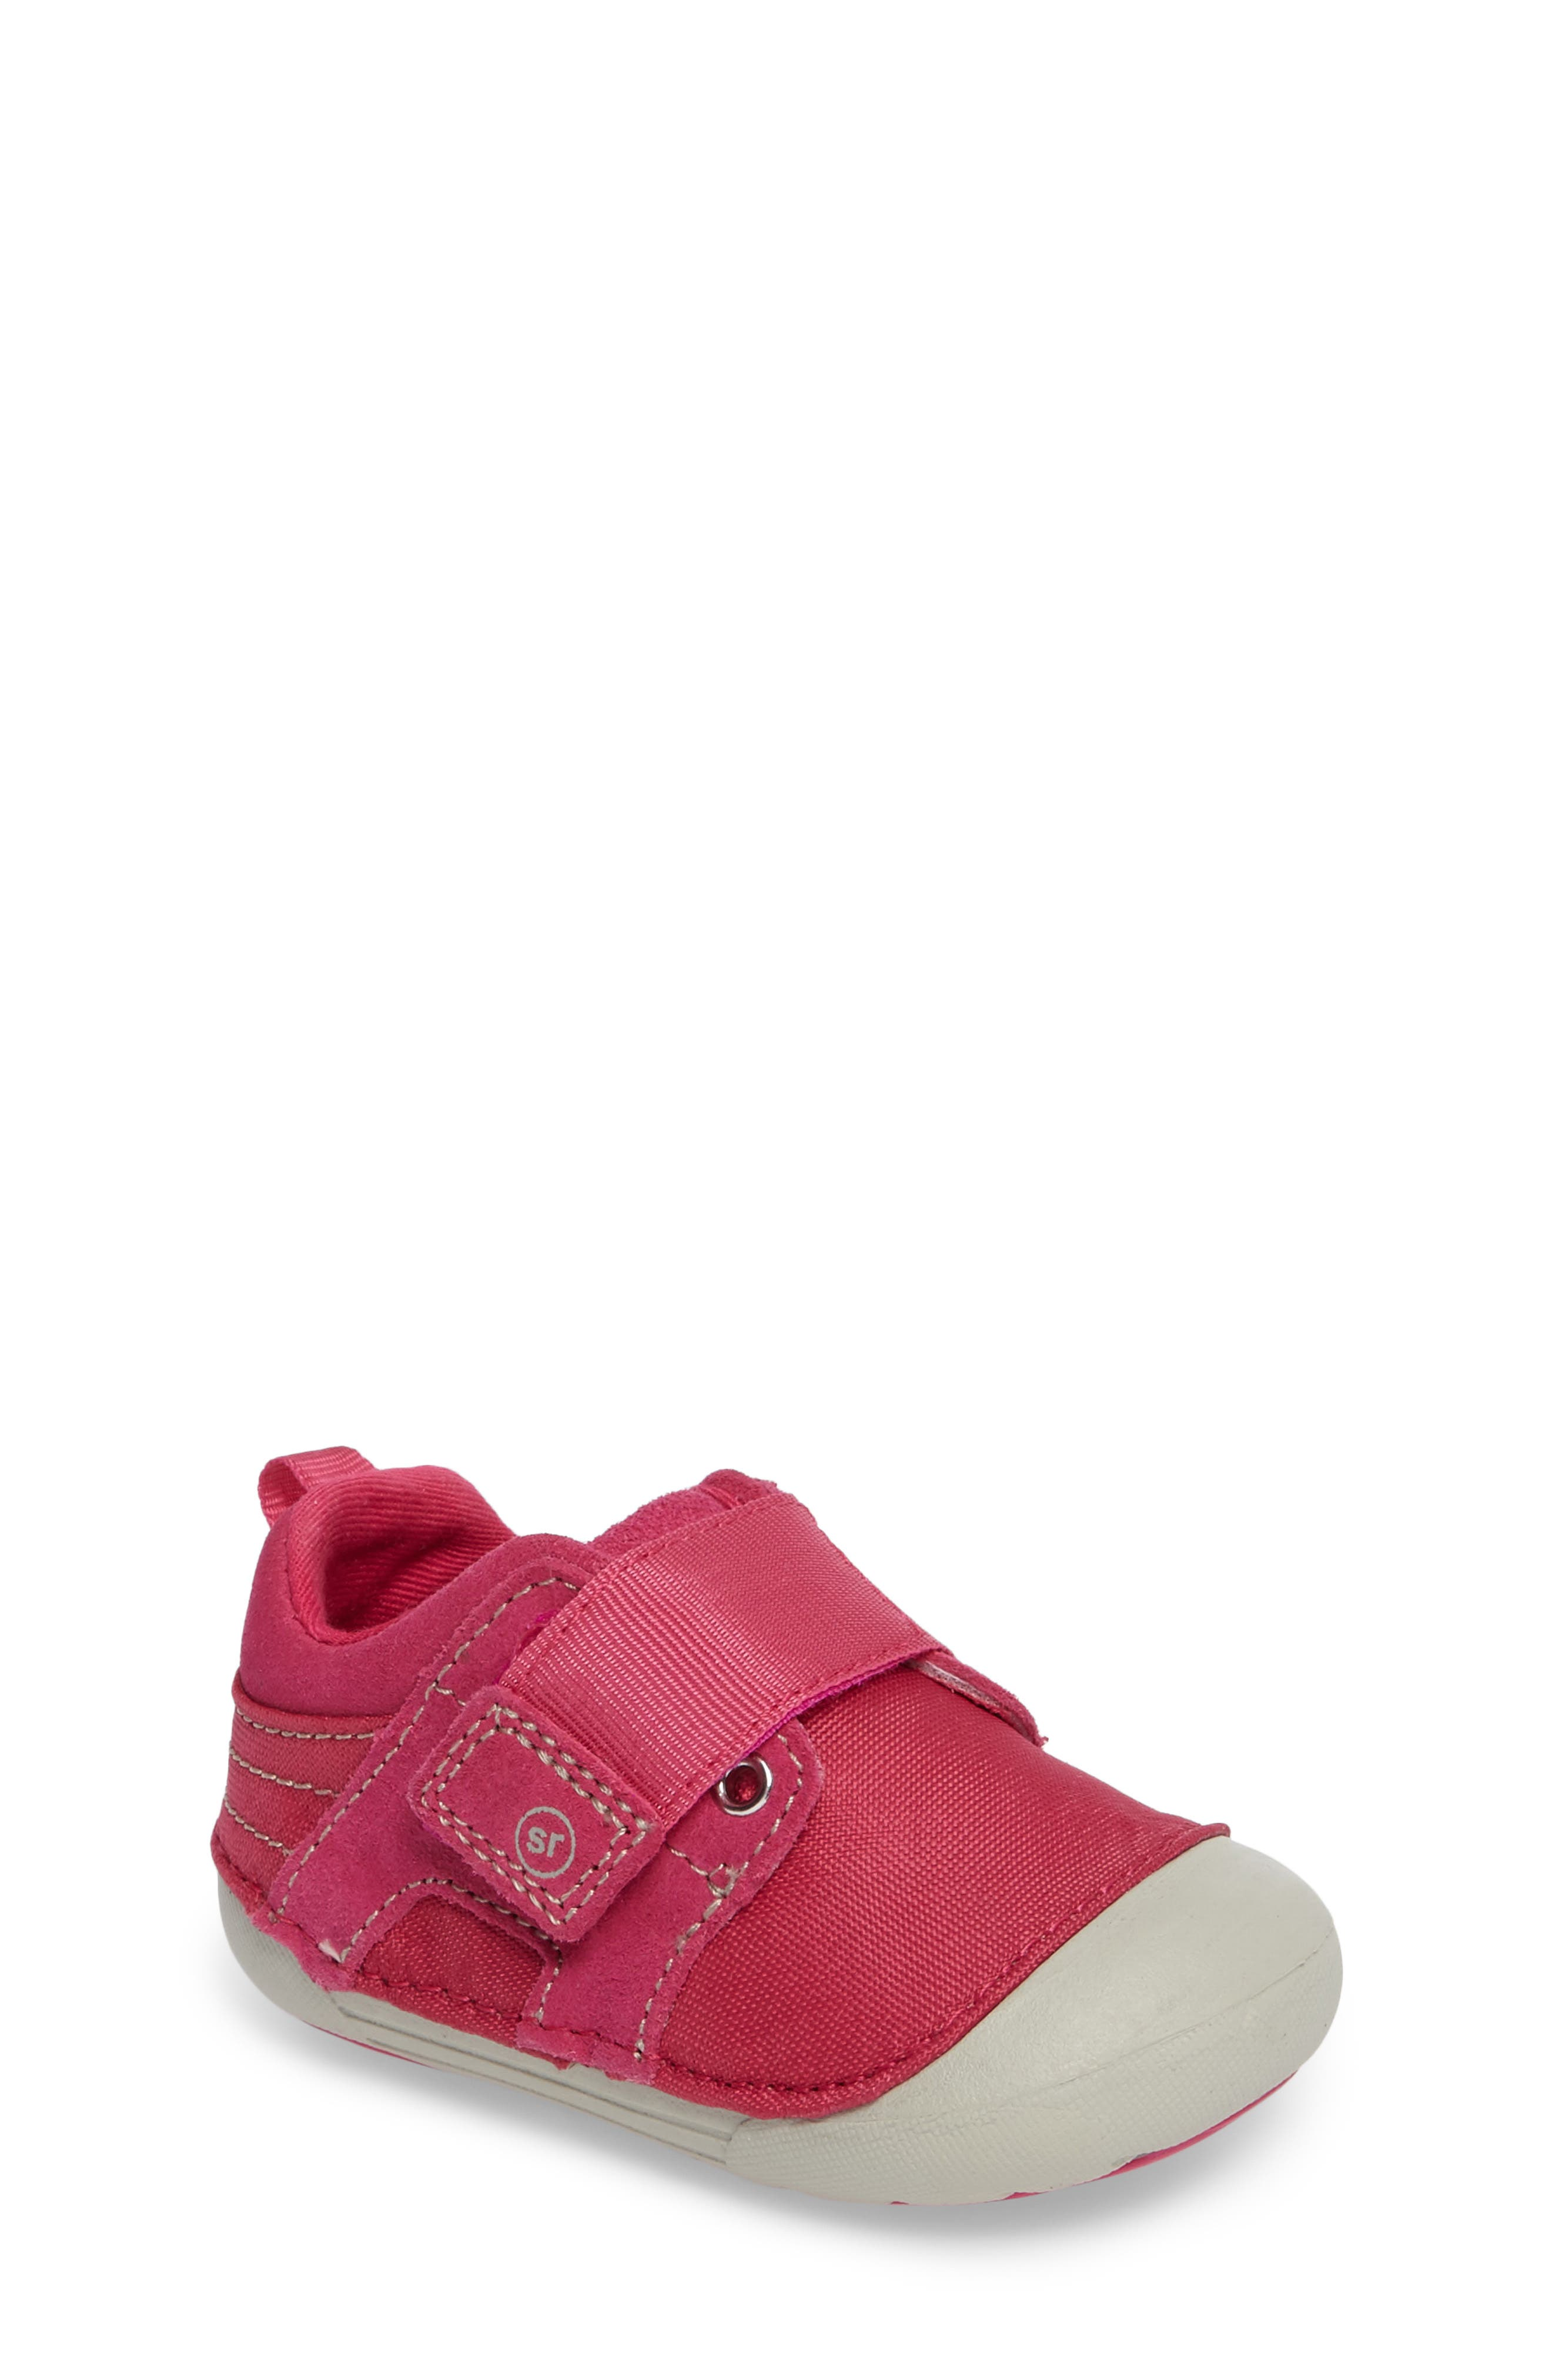 Main Image - Stride Rite Soft Motion™ Cameron Sneaker (Baby & Walker)